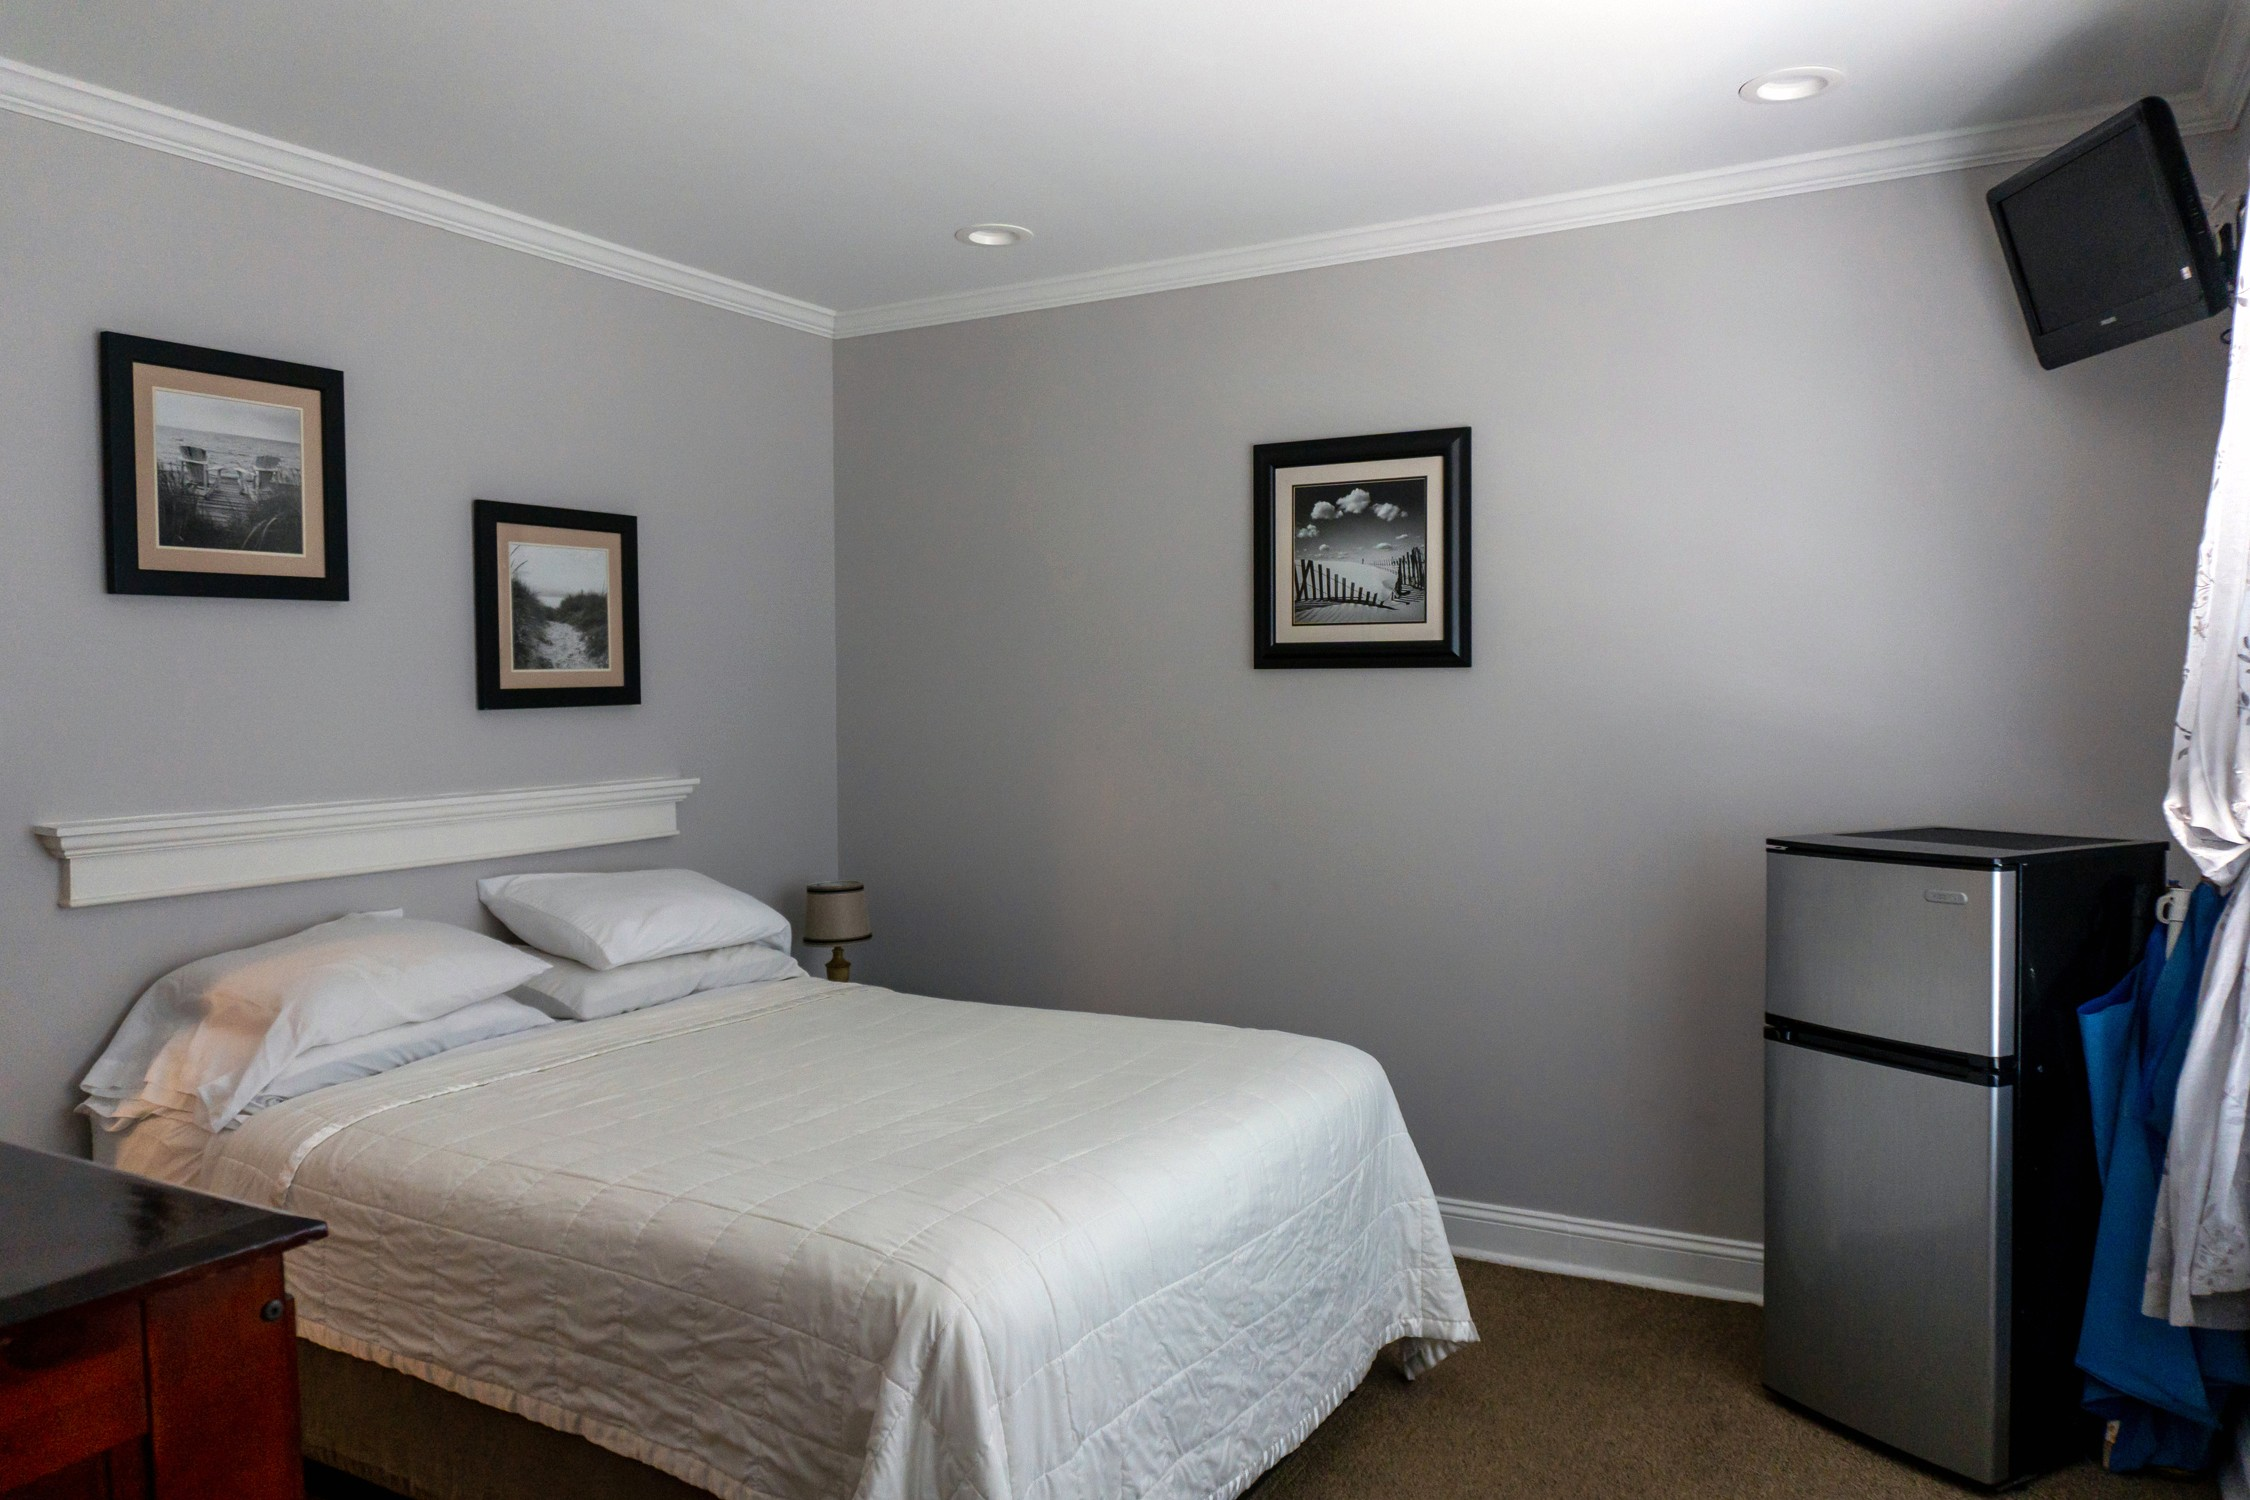 room with 1 queen bed, mounted flat screen tv, and mini fridge